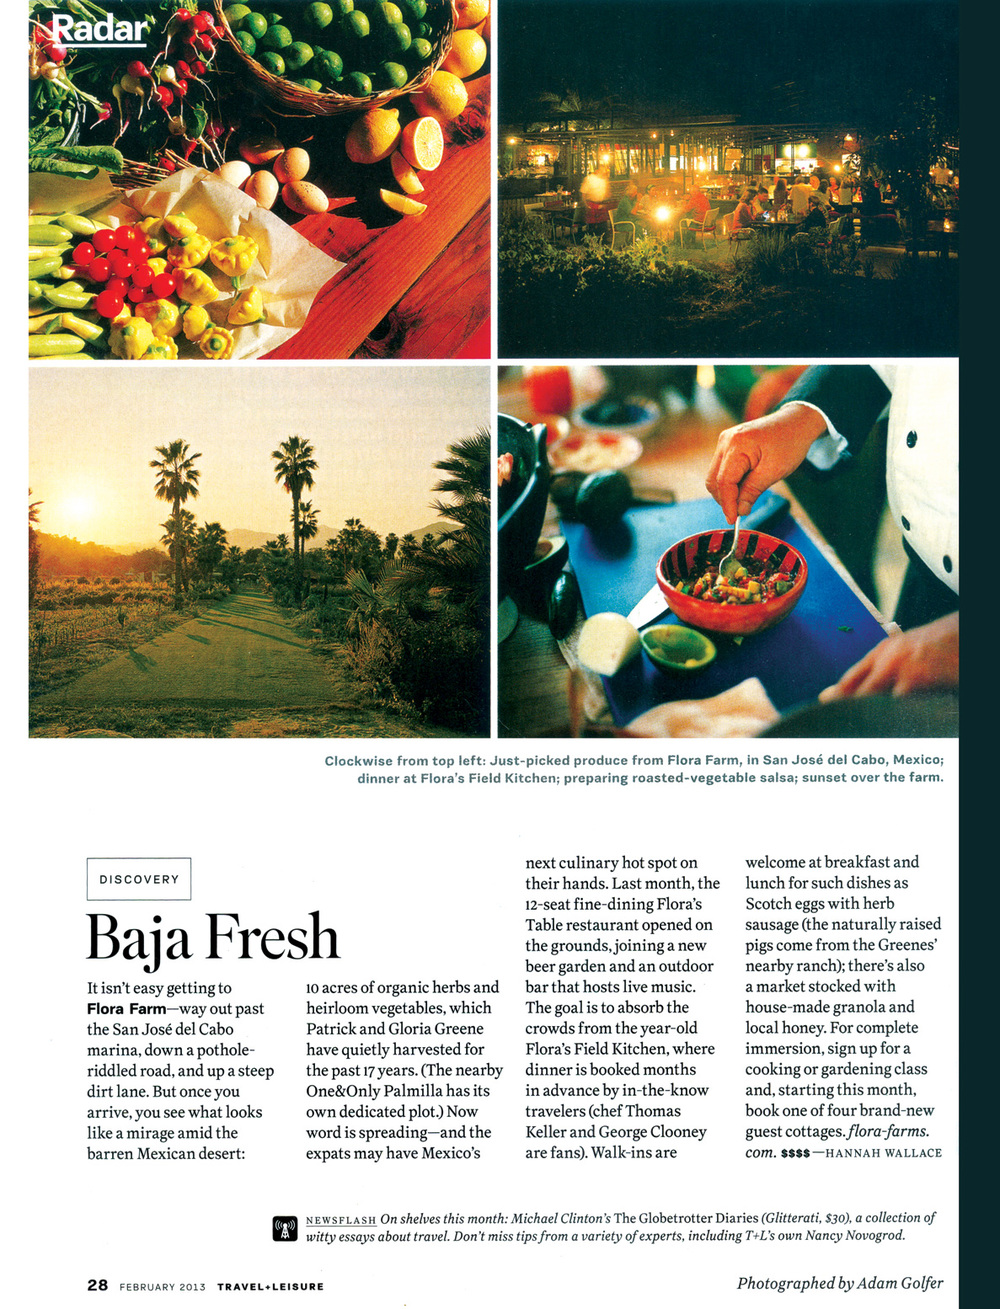 Travel + Leisure / February 2013 / Article